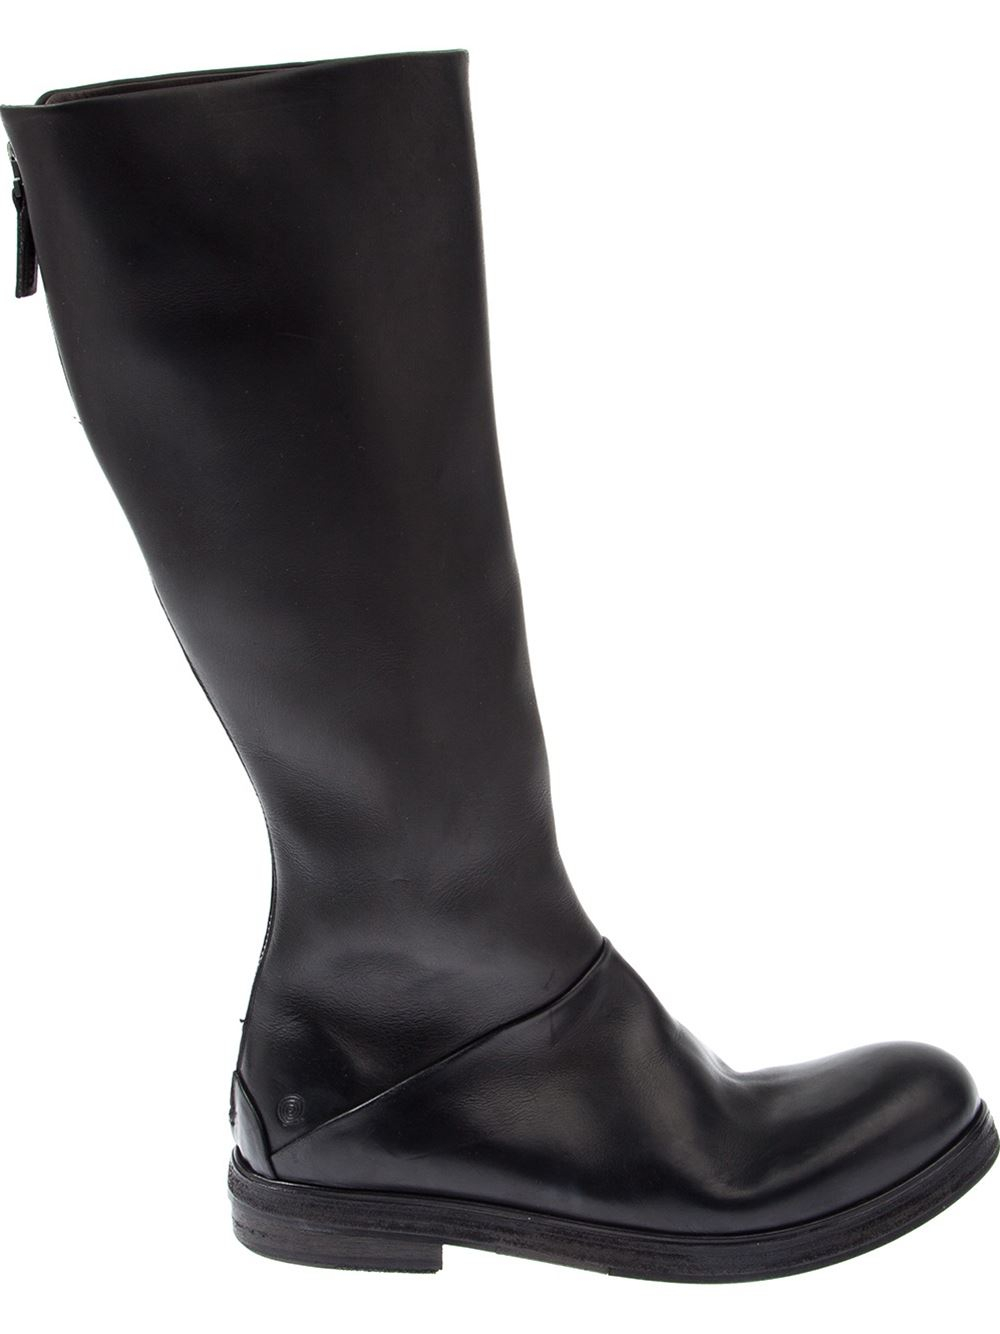 American television personality, Rachael Ray, in knee-length, black leather fashion boots, January diagram of a typical knee-length fashion boot showing shoemaker's terminology. Fashion boots generally employ the same range of soles and heels as are found in shoes. The defining character of the boot is the length of the shaft.